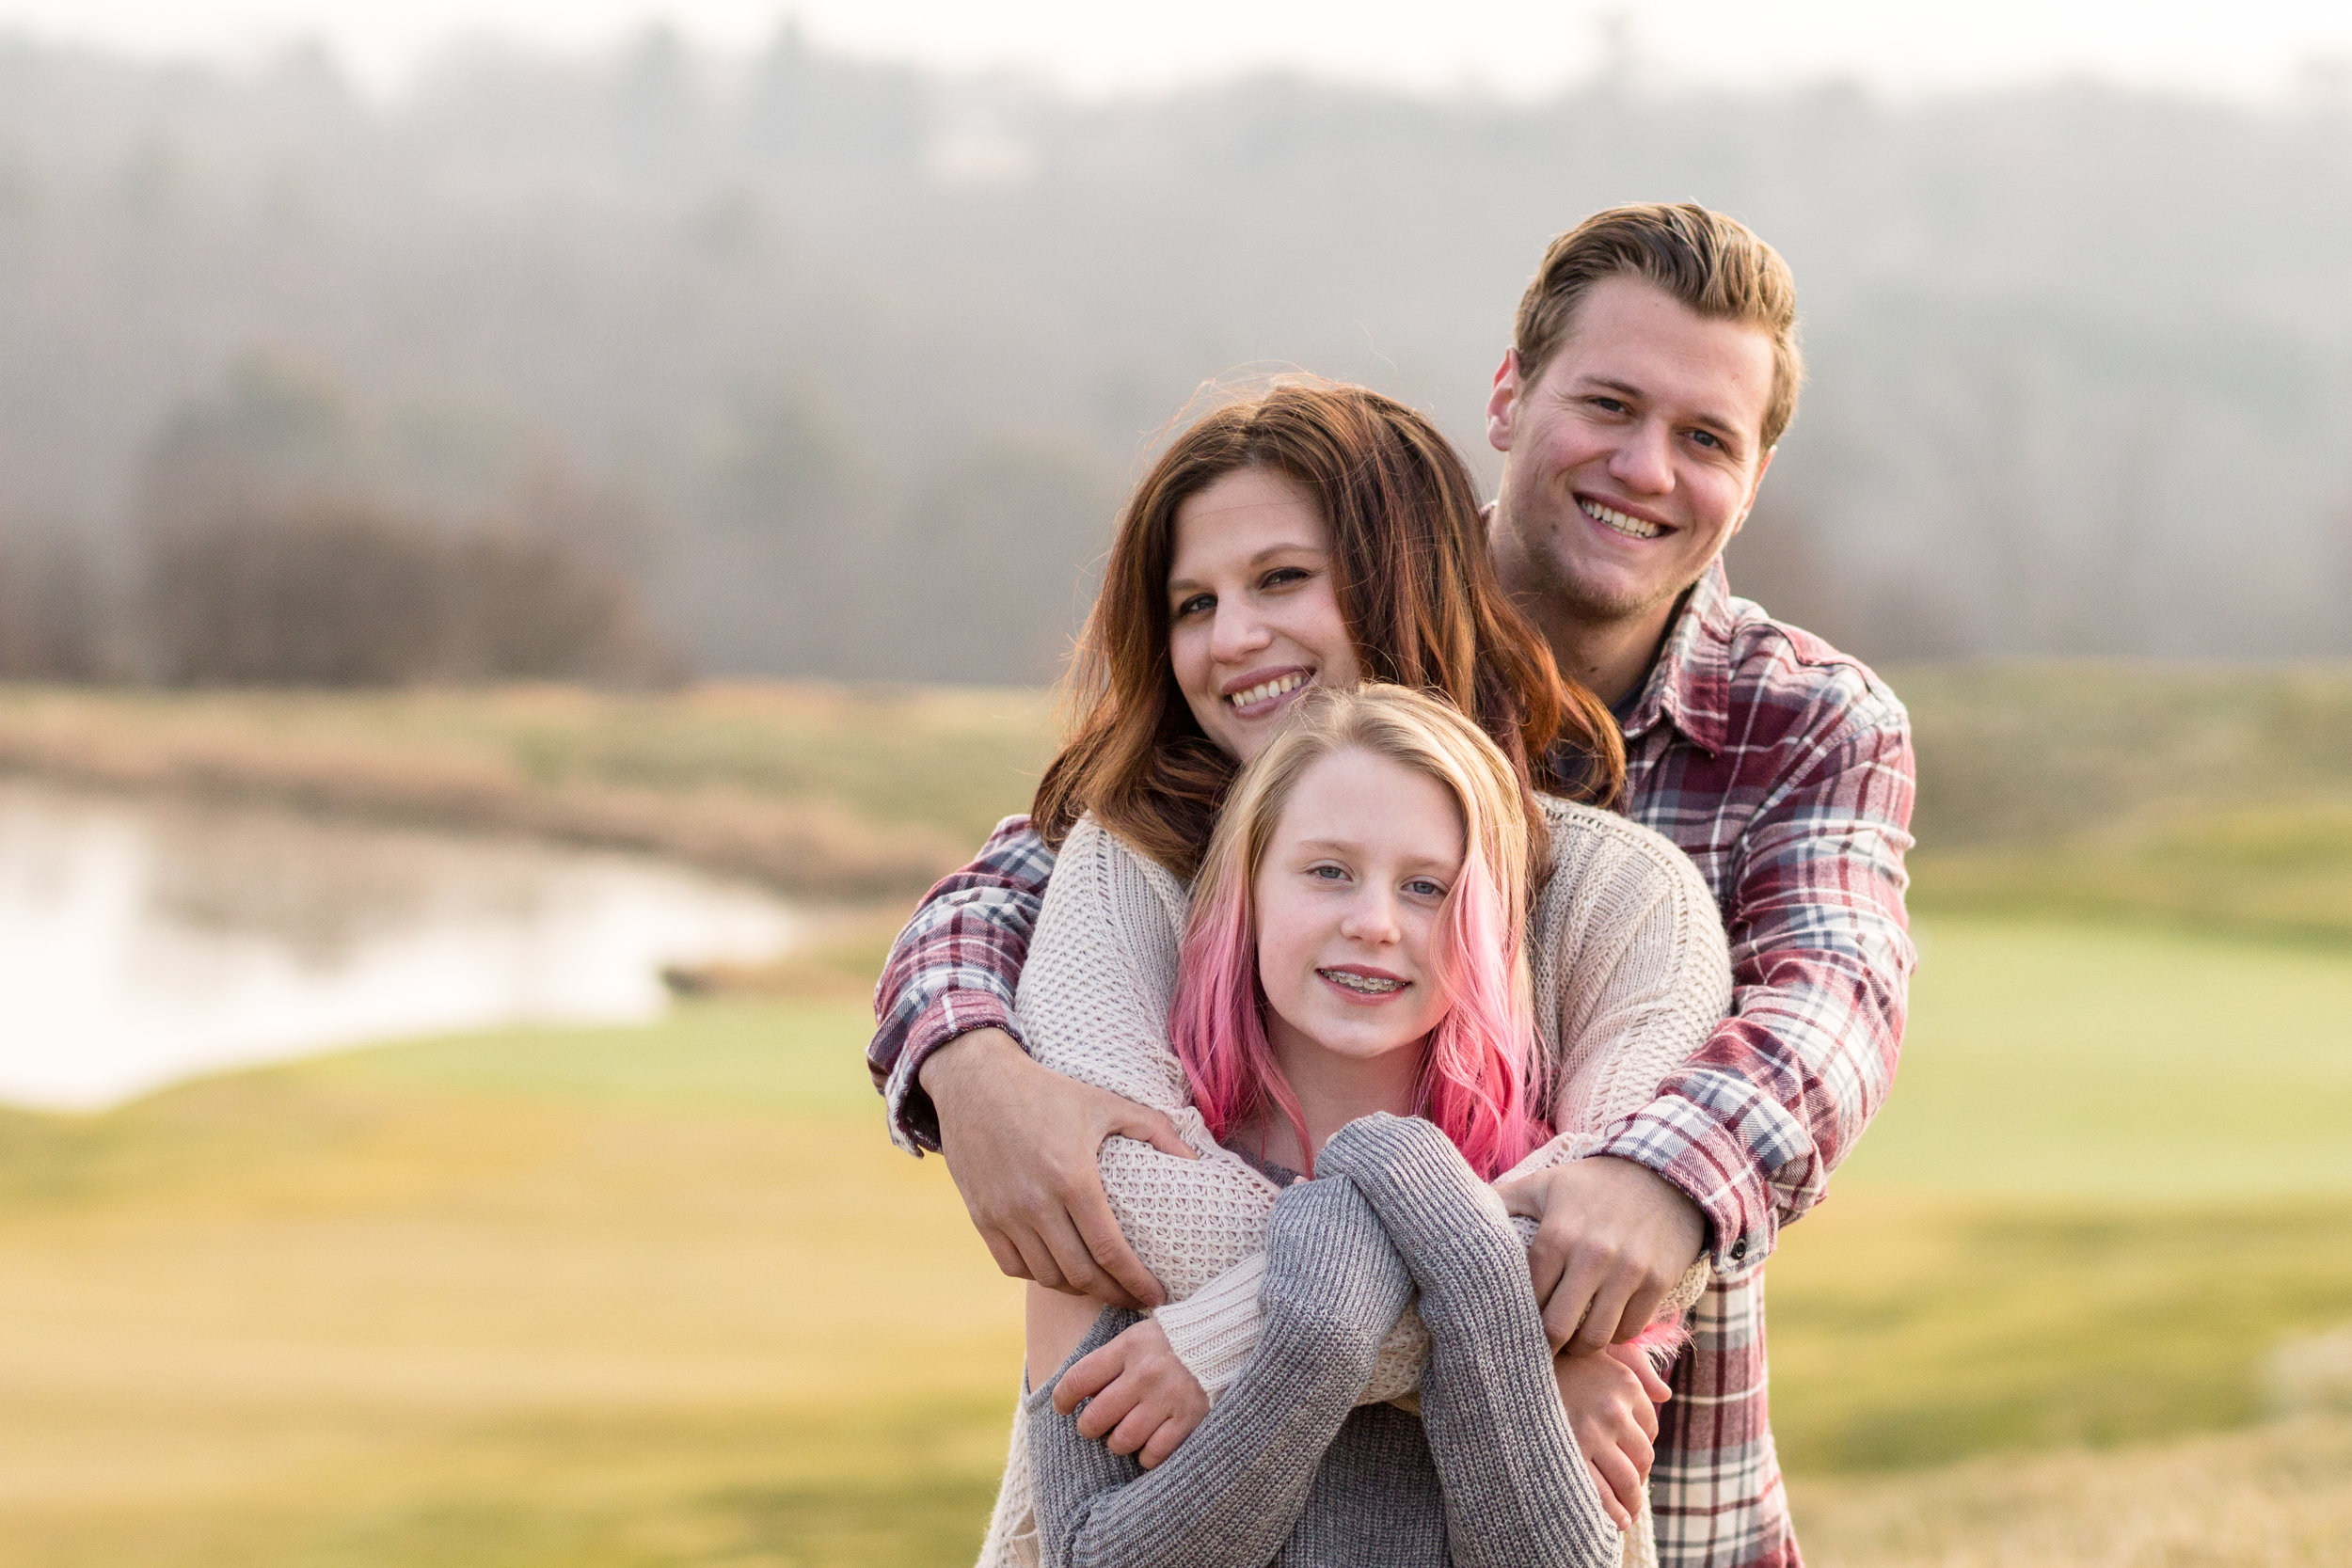 North East Pennsylvania Family Session Lytle Photo Co (10).jpg